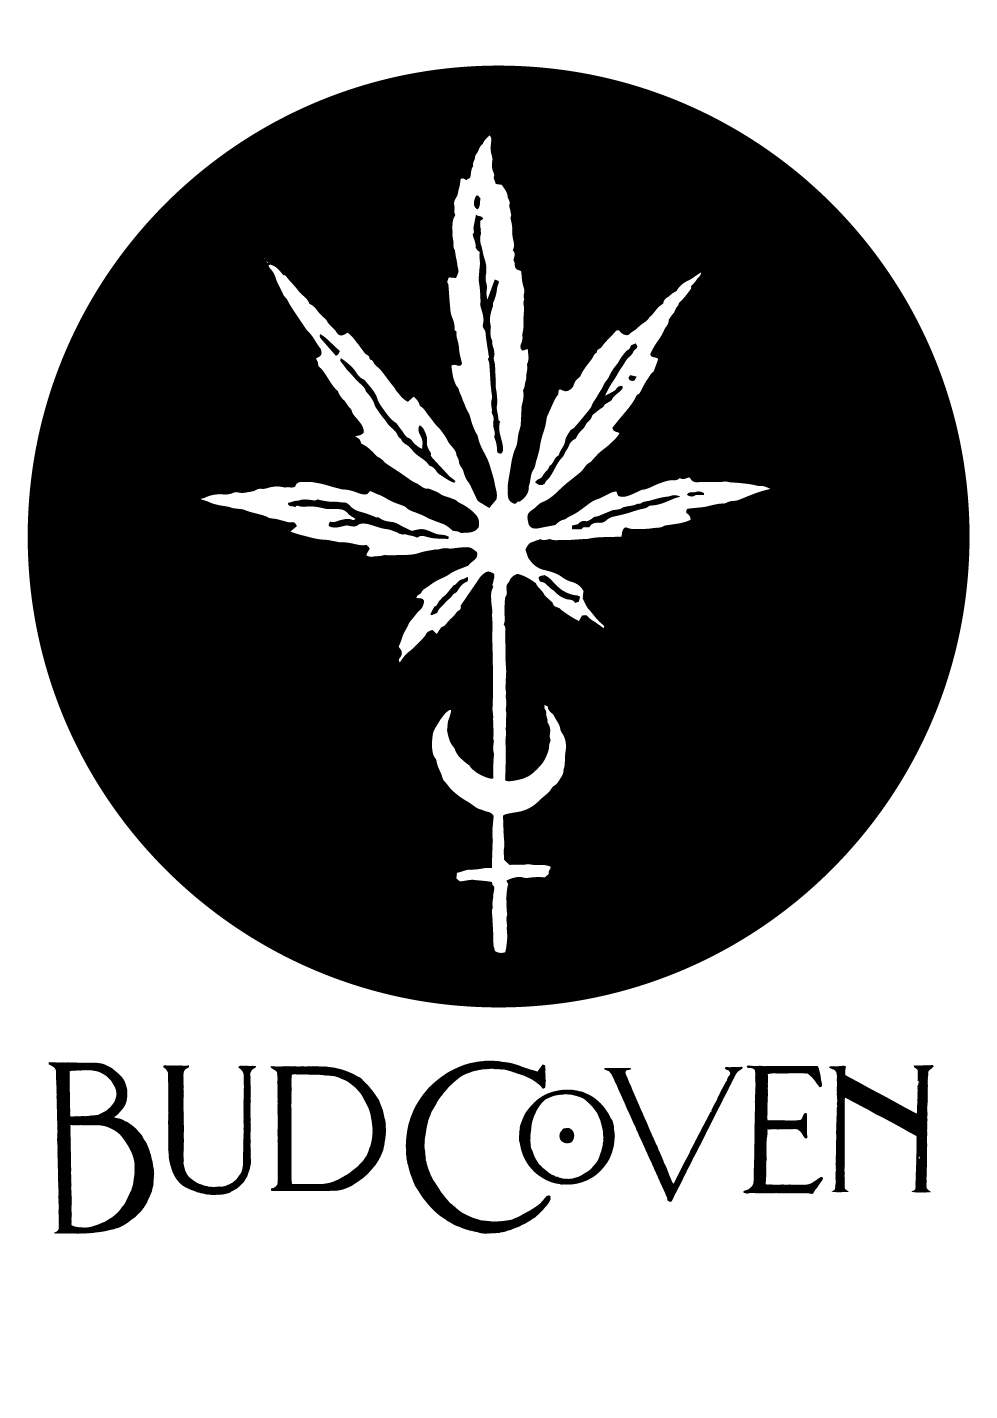 Bud Coven_lockup2.png